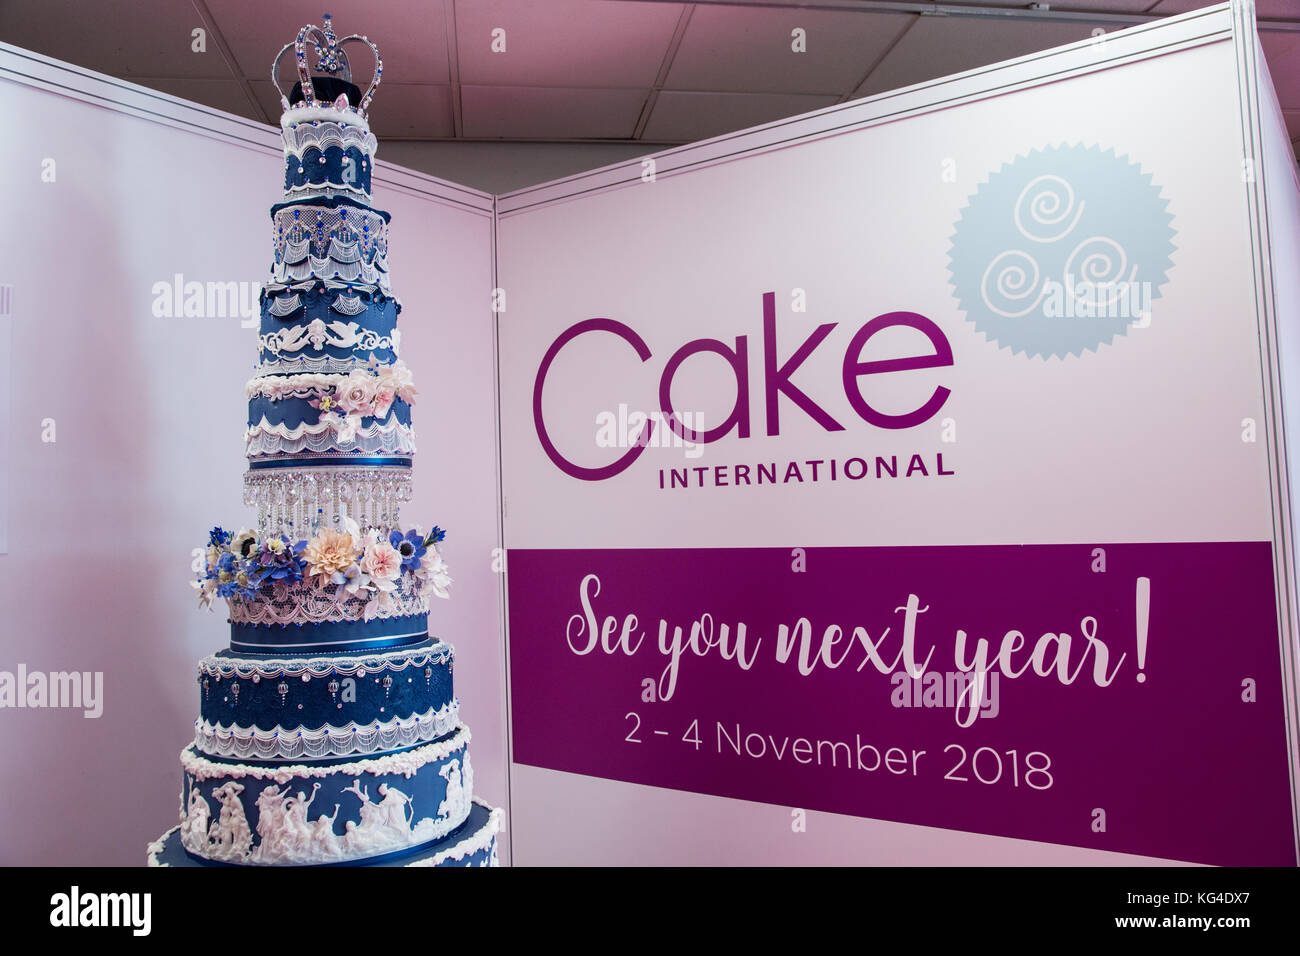 Birmingham, UK. 04th Nov, 2017. Cake International at the NEC where master cake bakers and decorators compete for best cakes in various categories to win gold Credit: steven roe/Alamy Live News Stock Photo